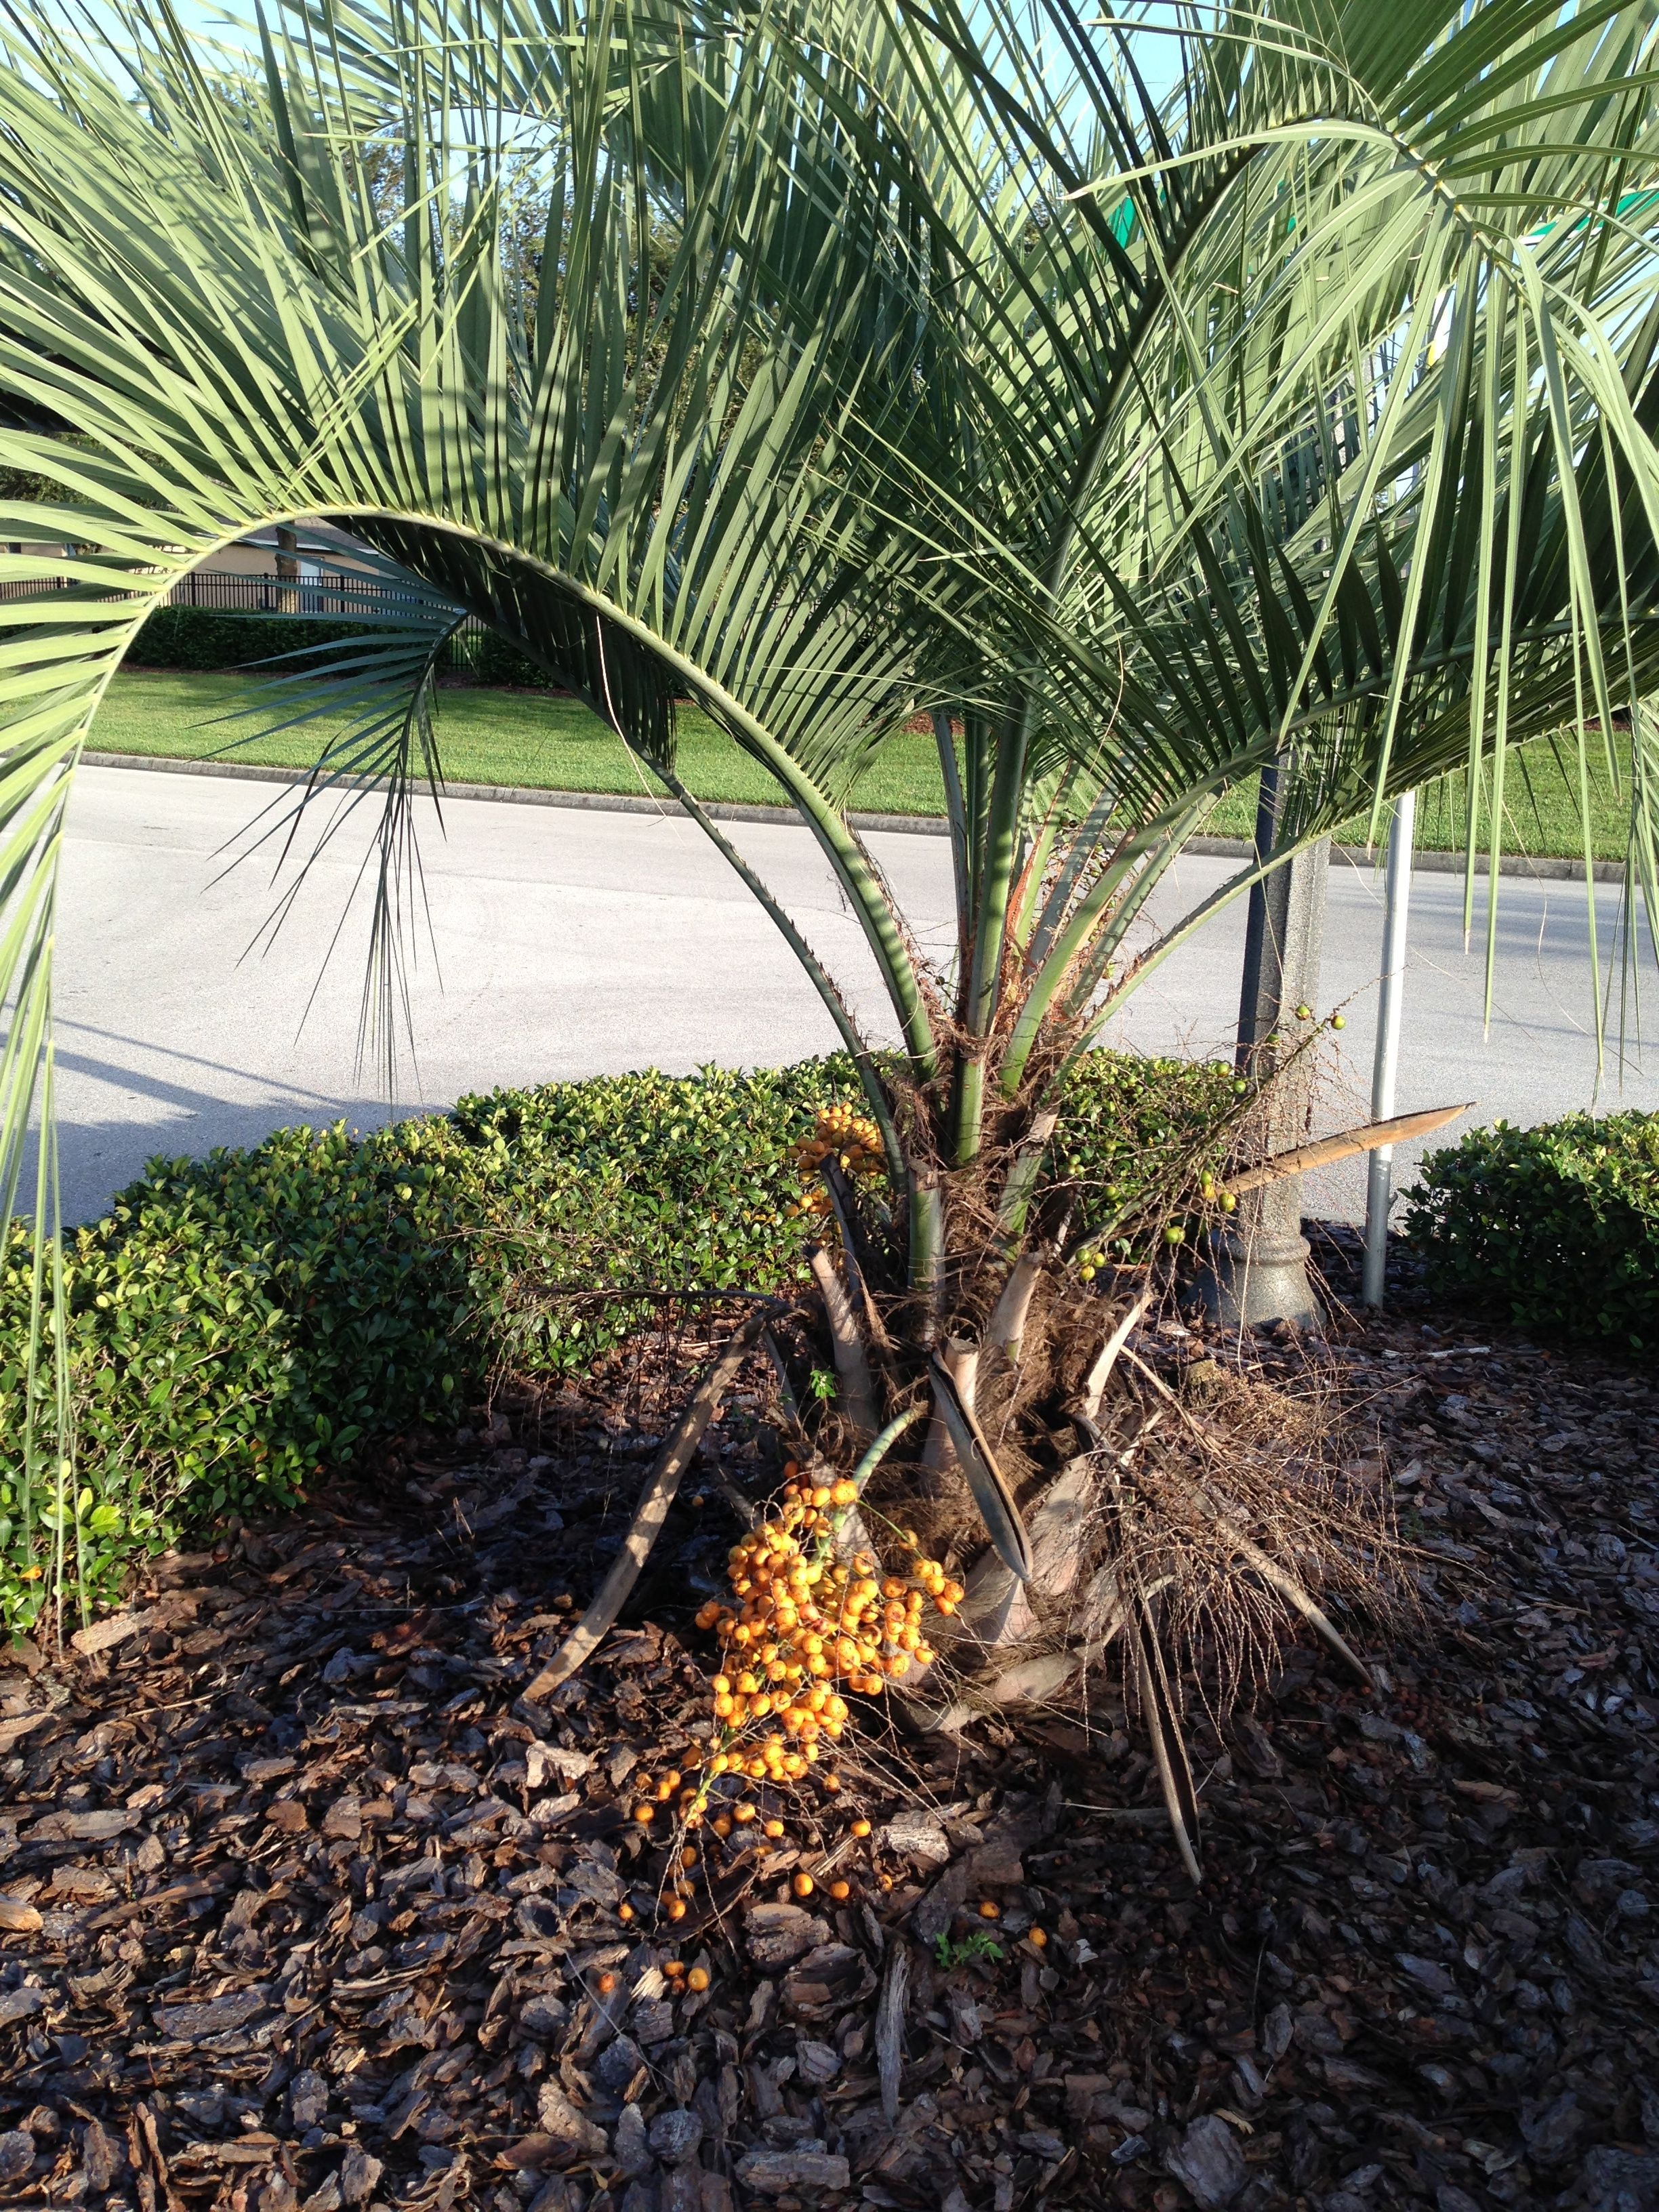 Pindo Palm Tree | Gardening | Pinterest | Palm, Soil type and Gardens